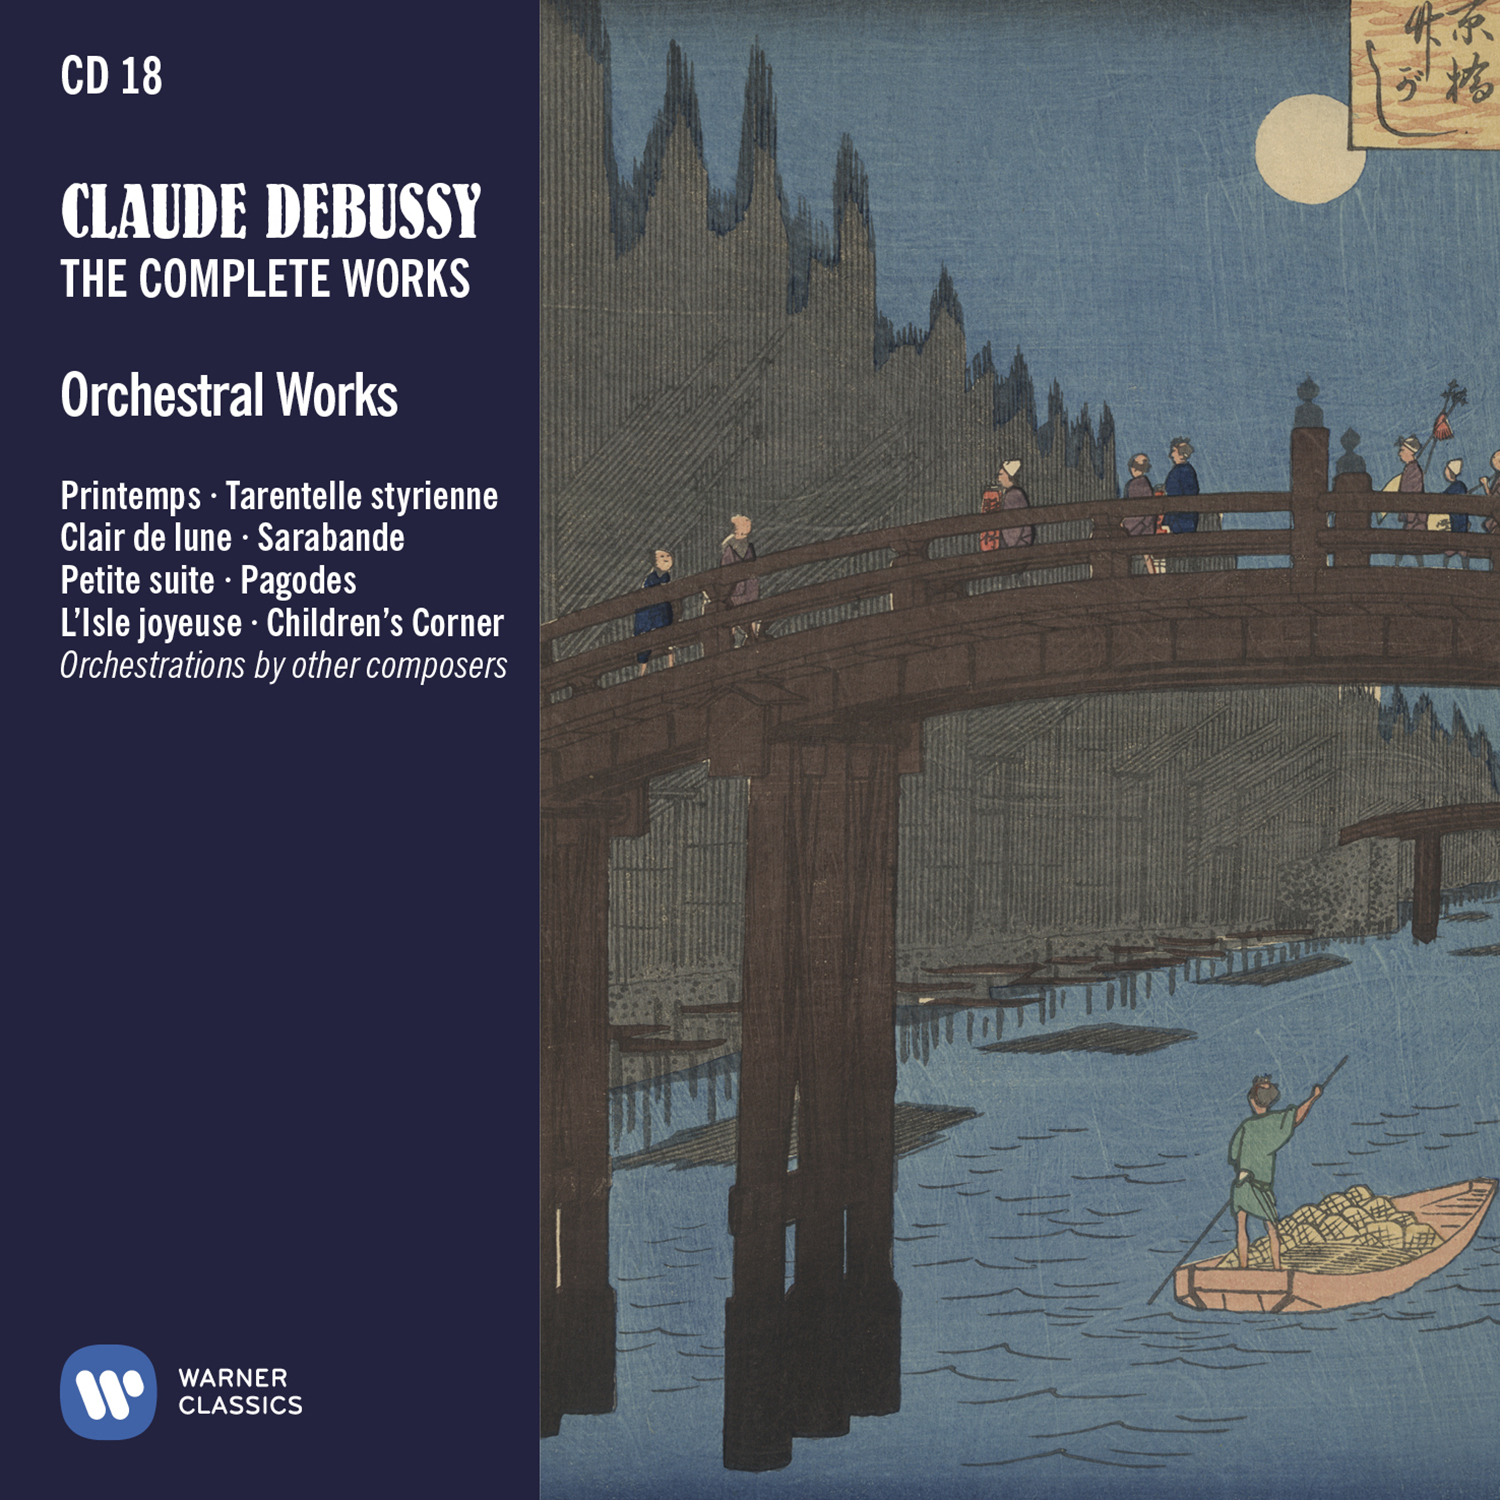 Debussy The complete works - Cover wallet CD18.jpg